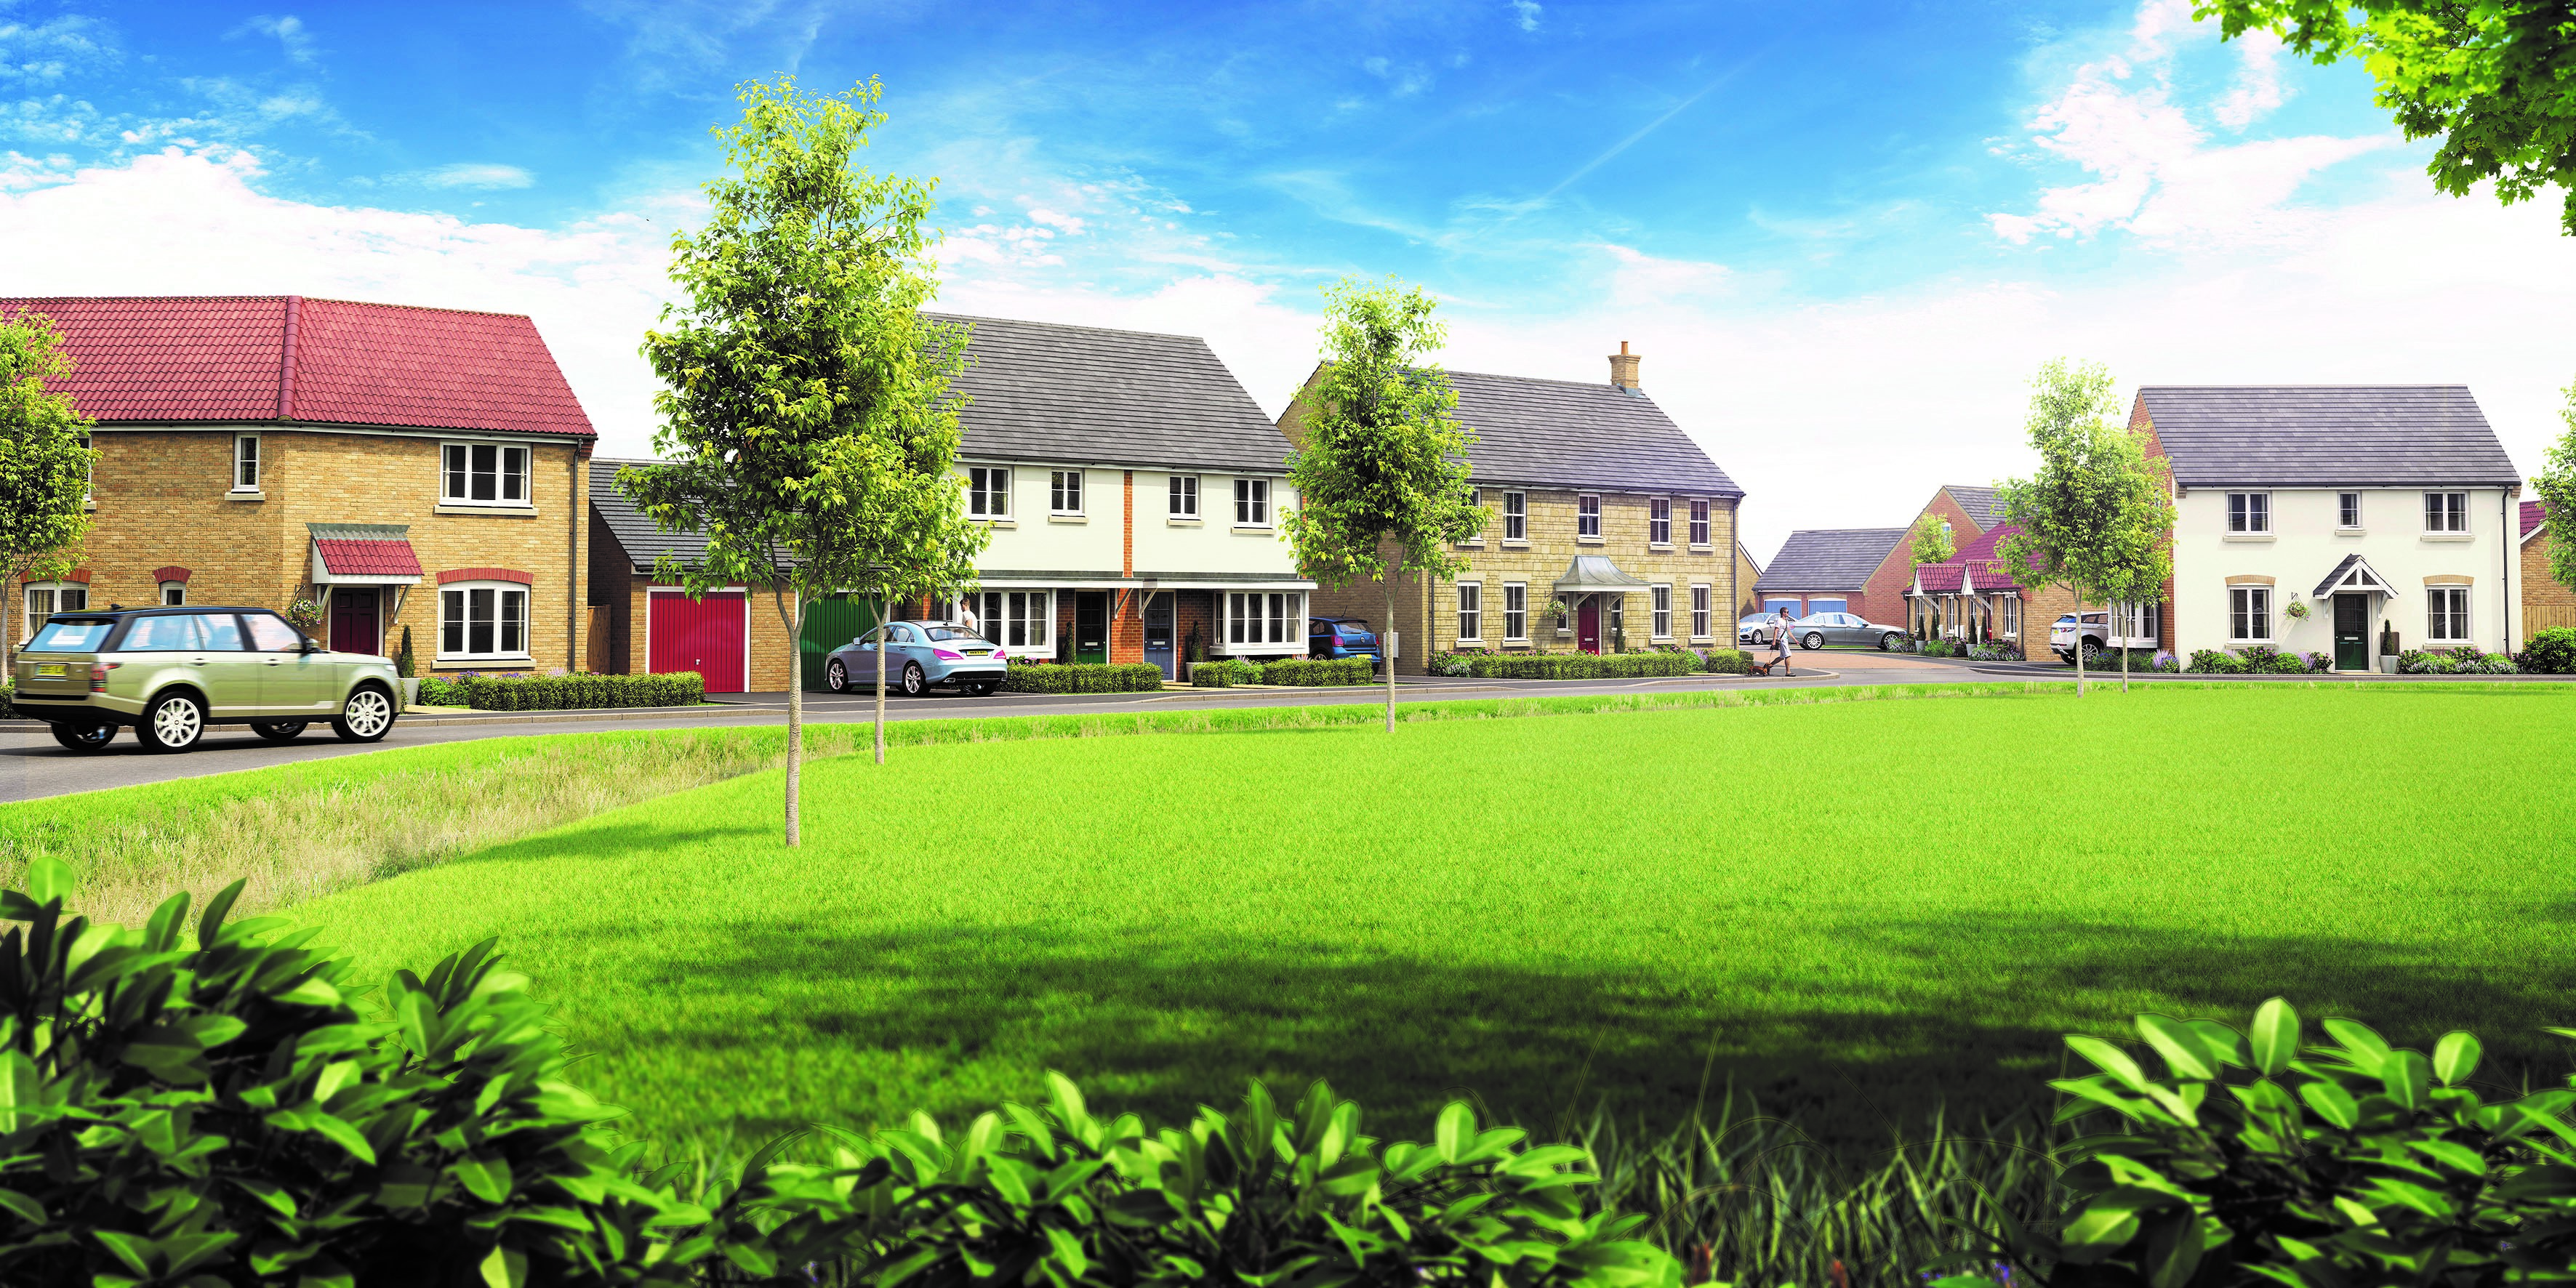 Public invited to Allison Homes show home opening in Pinchbeck, Spalding